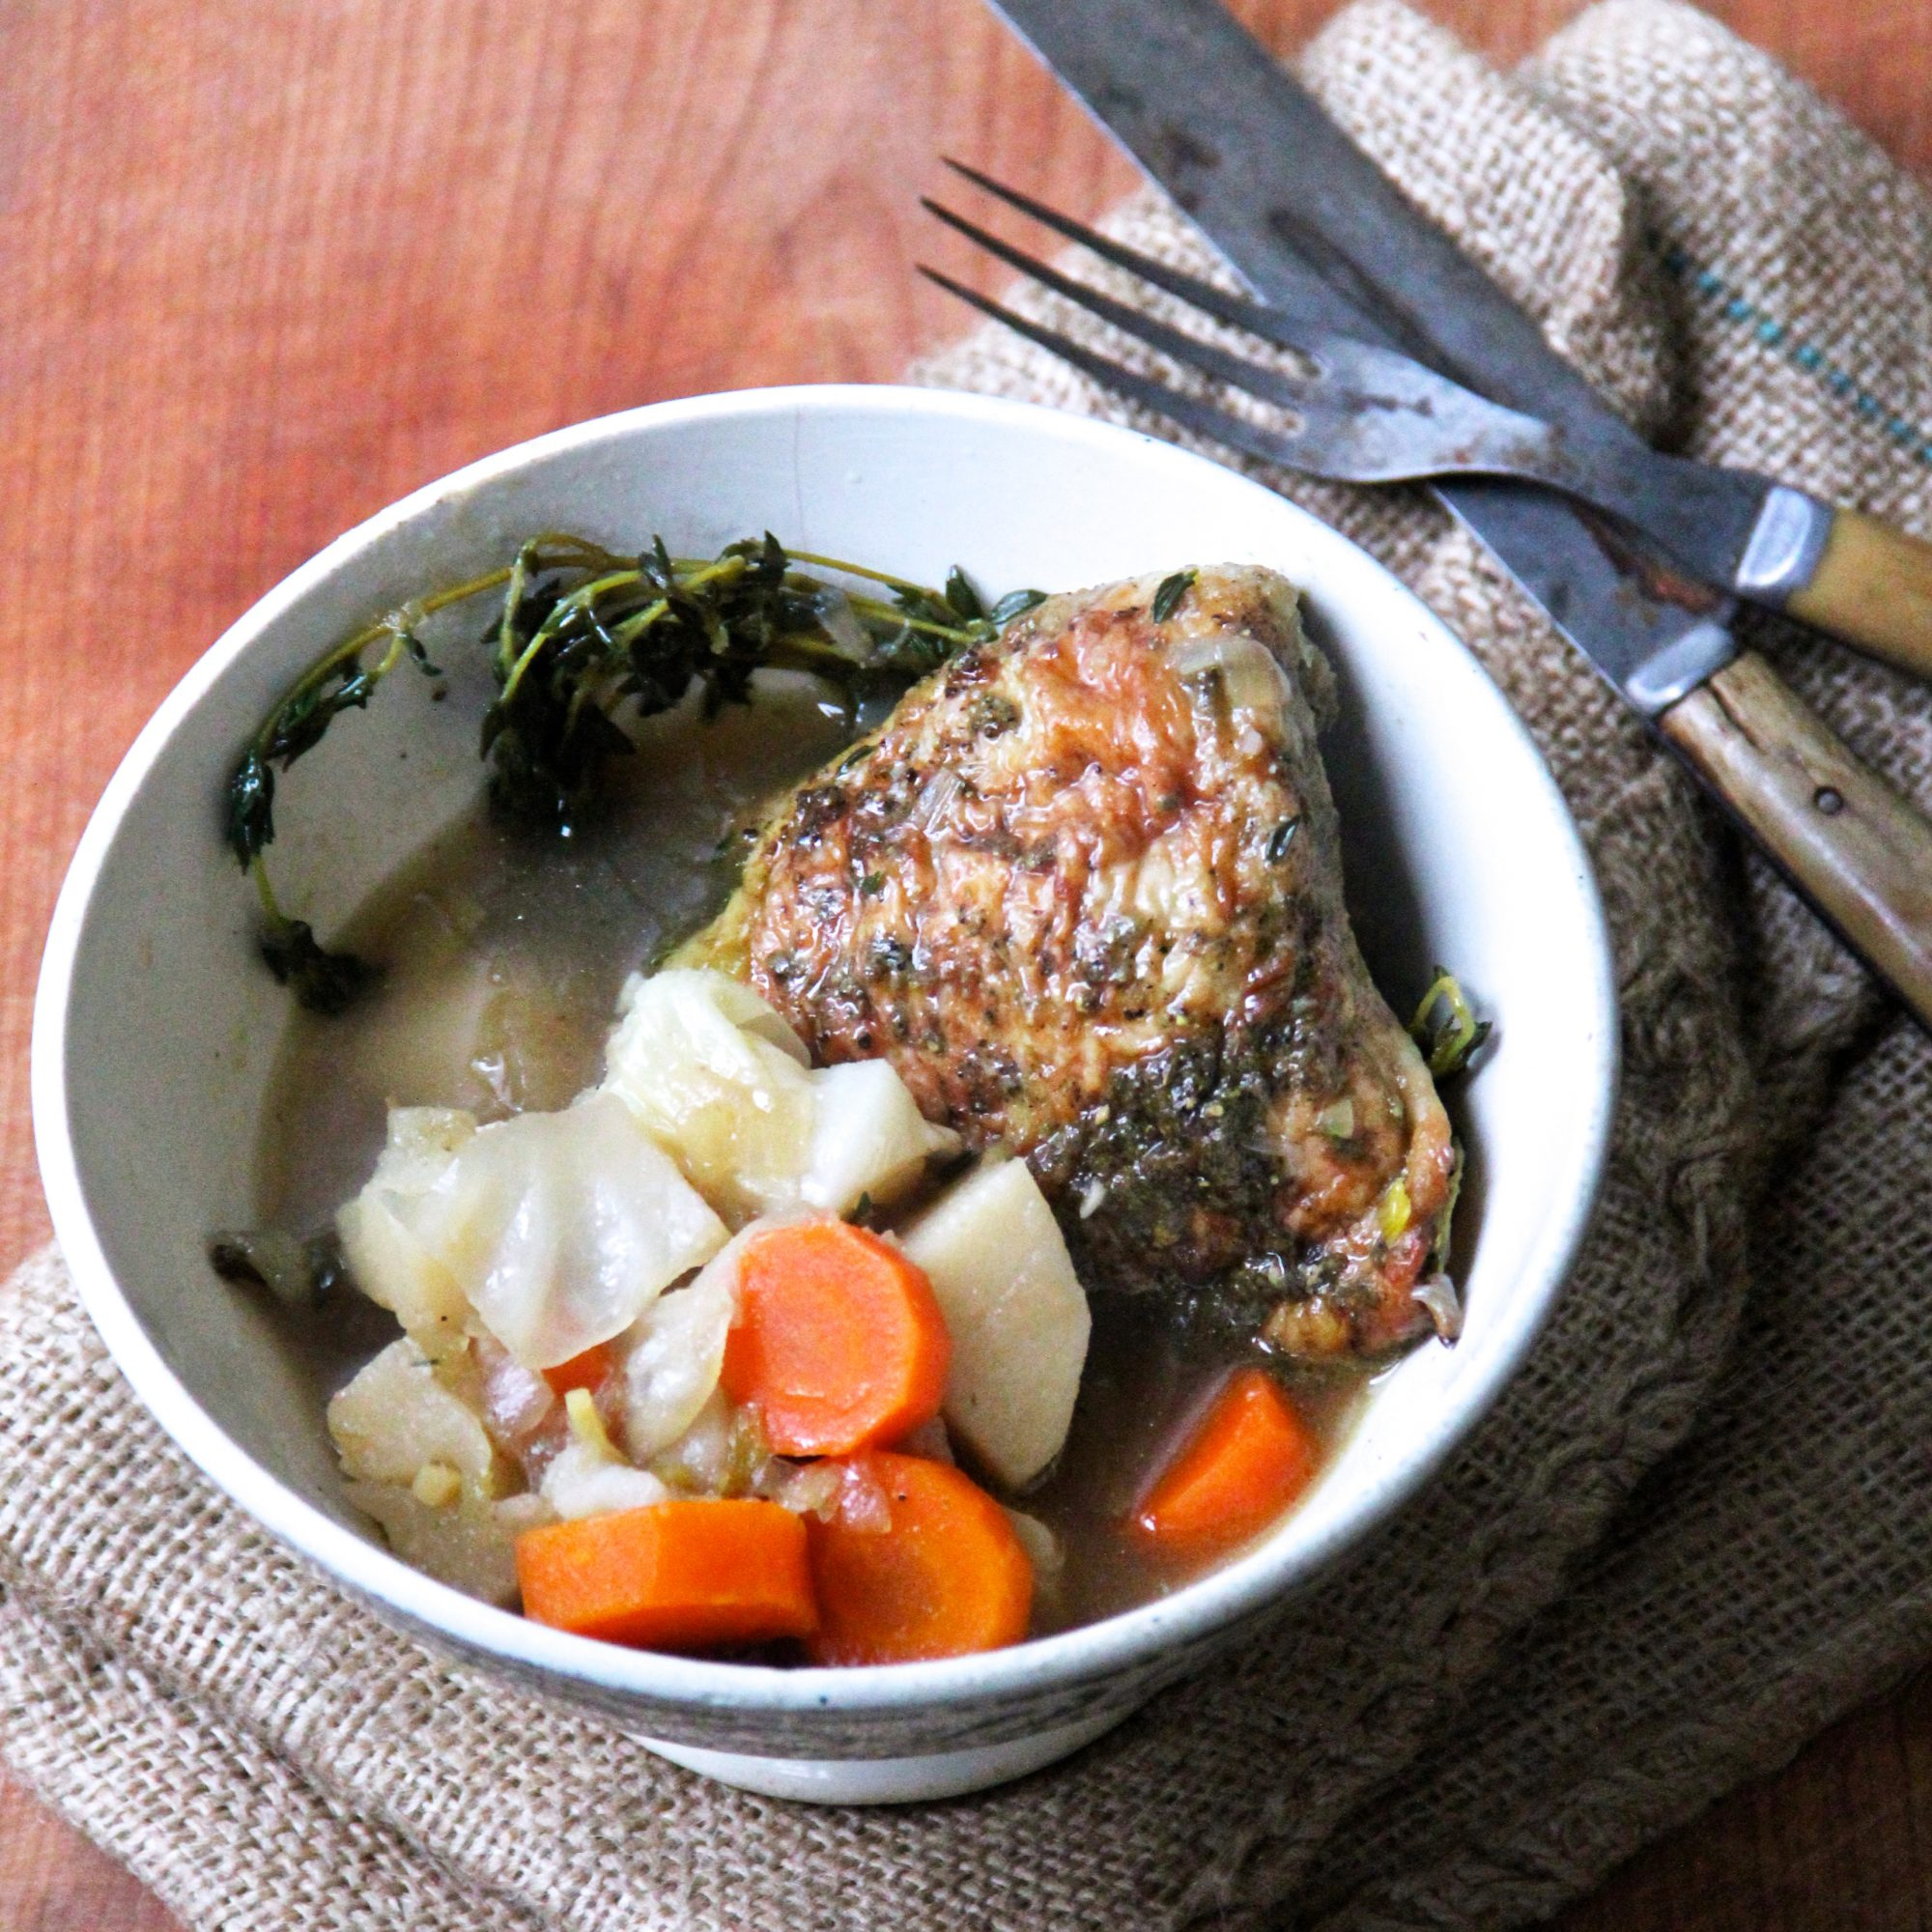 201405-r-jamaican-chicken-stew.jpg